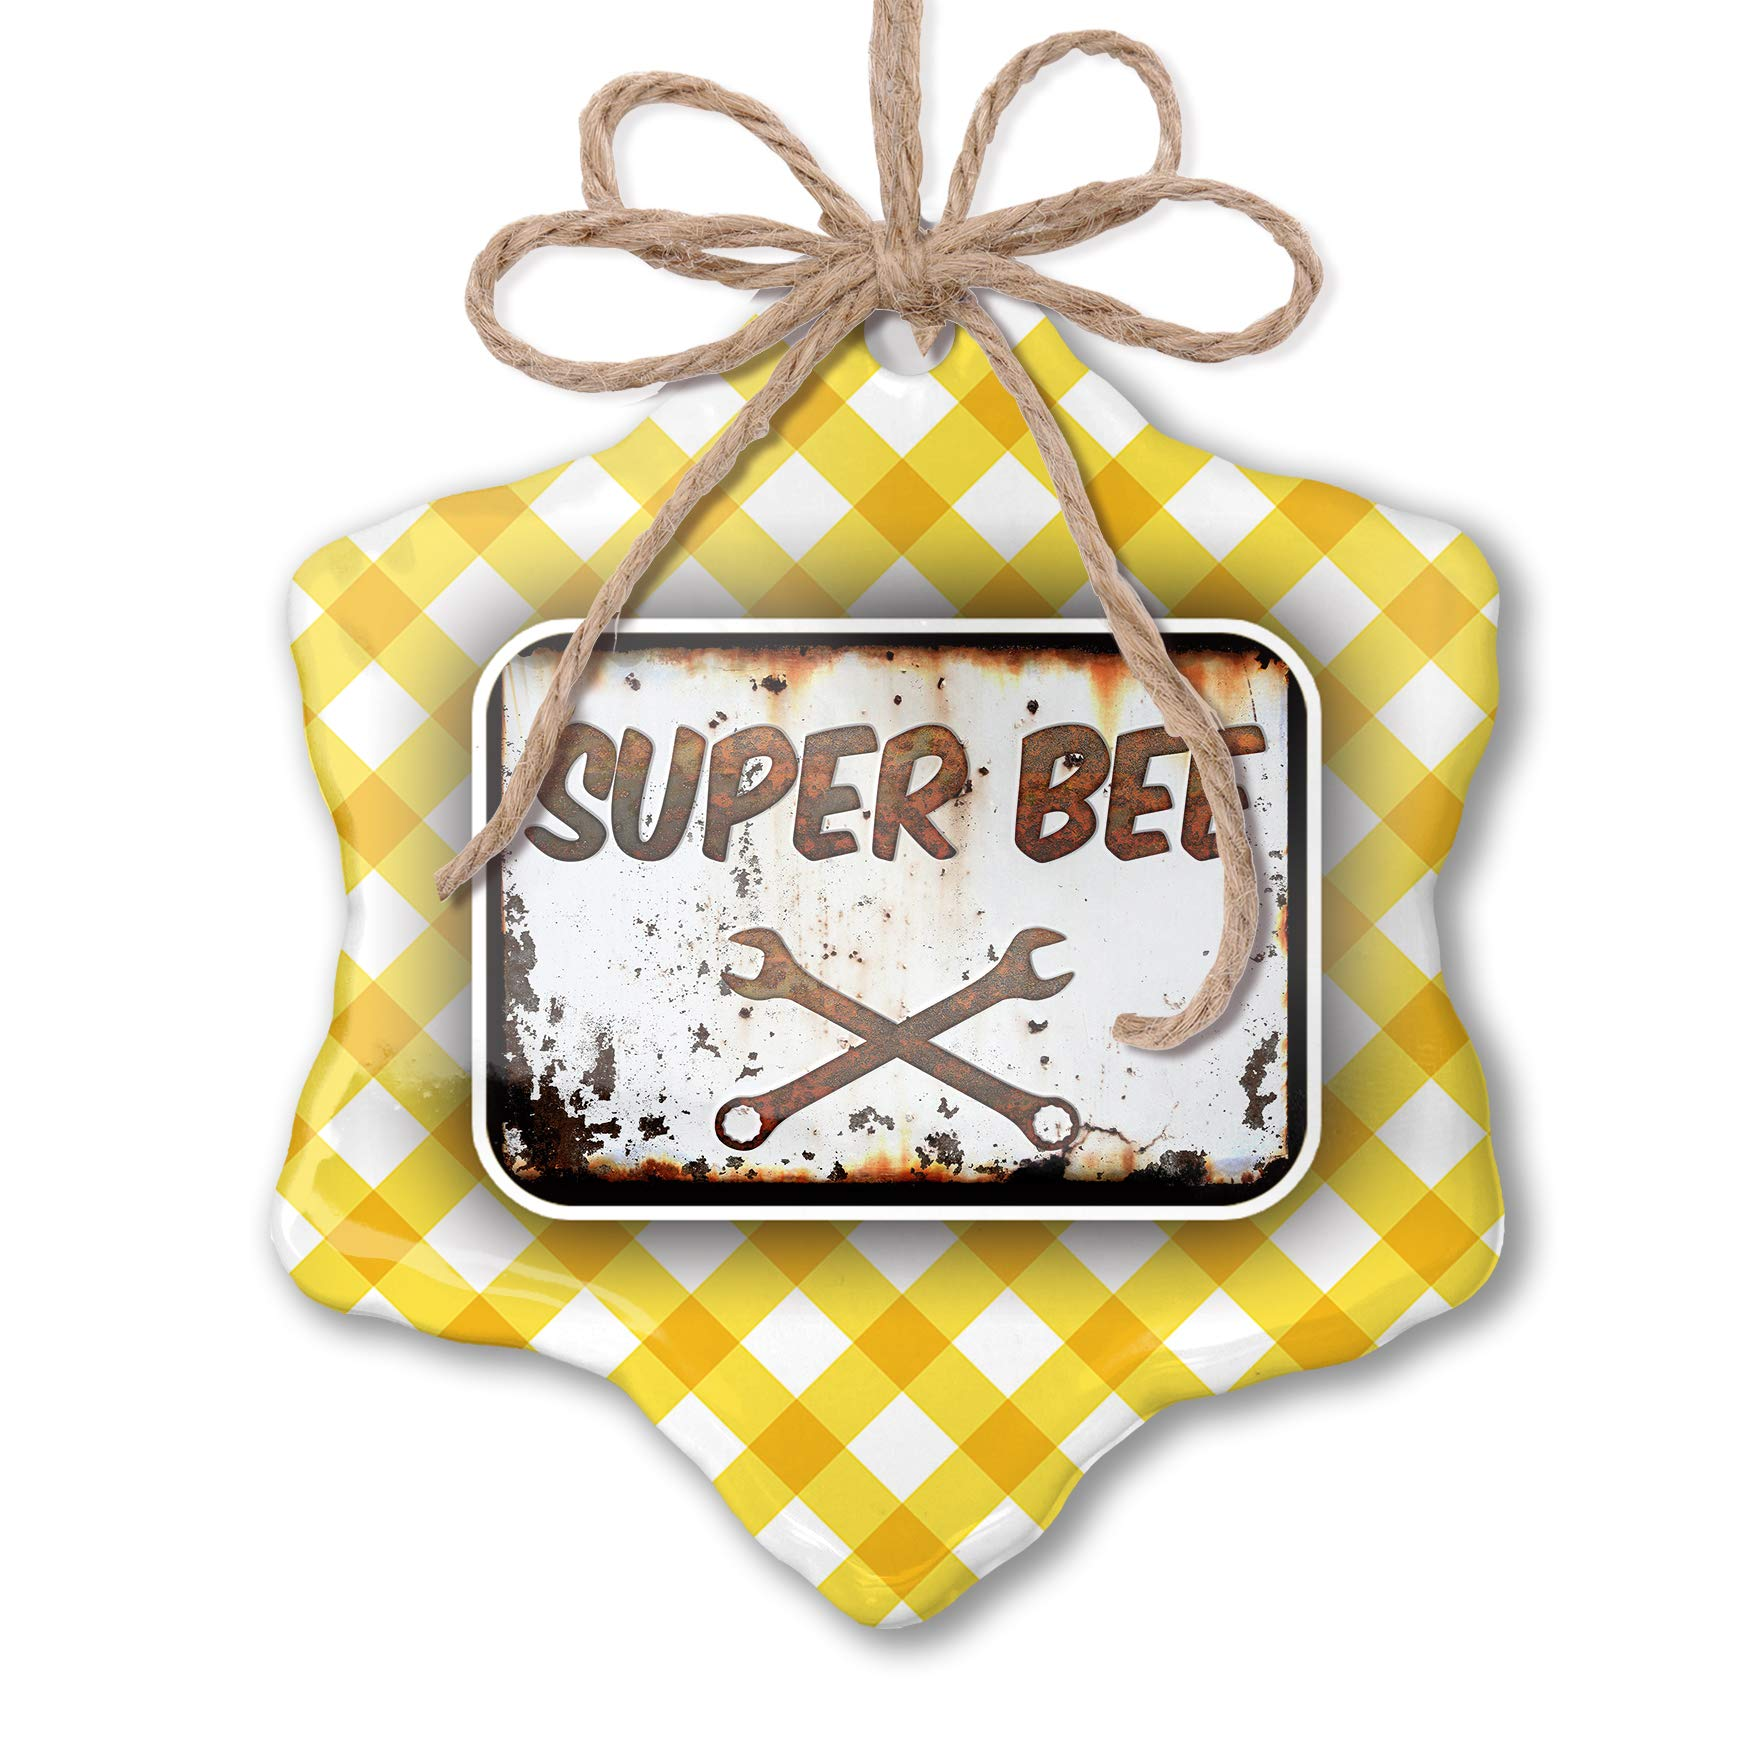 NEONBLOND Christmas Ornament Rusty Old Look car Super Bee Yellow Plaid